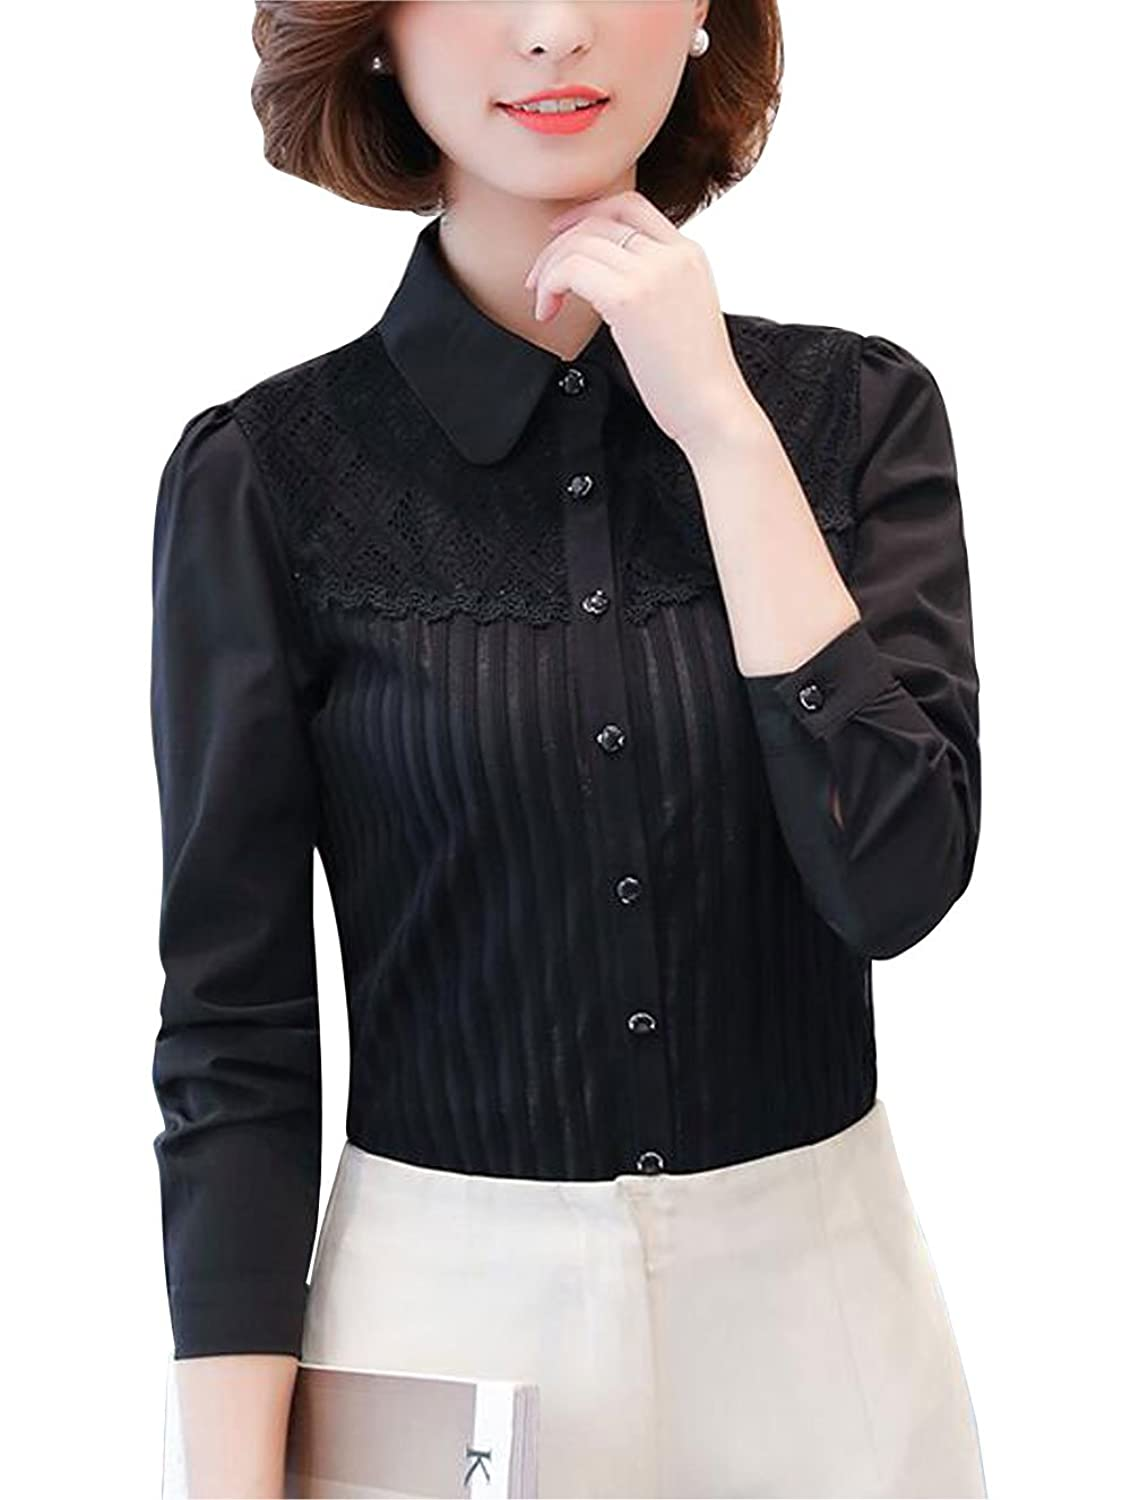 Edwardian Blouses | White & Black Lace Blouses & Sweaters Double Plus Open DPO Womens Vintage Collared Pleated Button Down Shirt Long Sleeve Lace Stretchy Blouse $23.59 AT vintagedancer.com